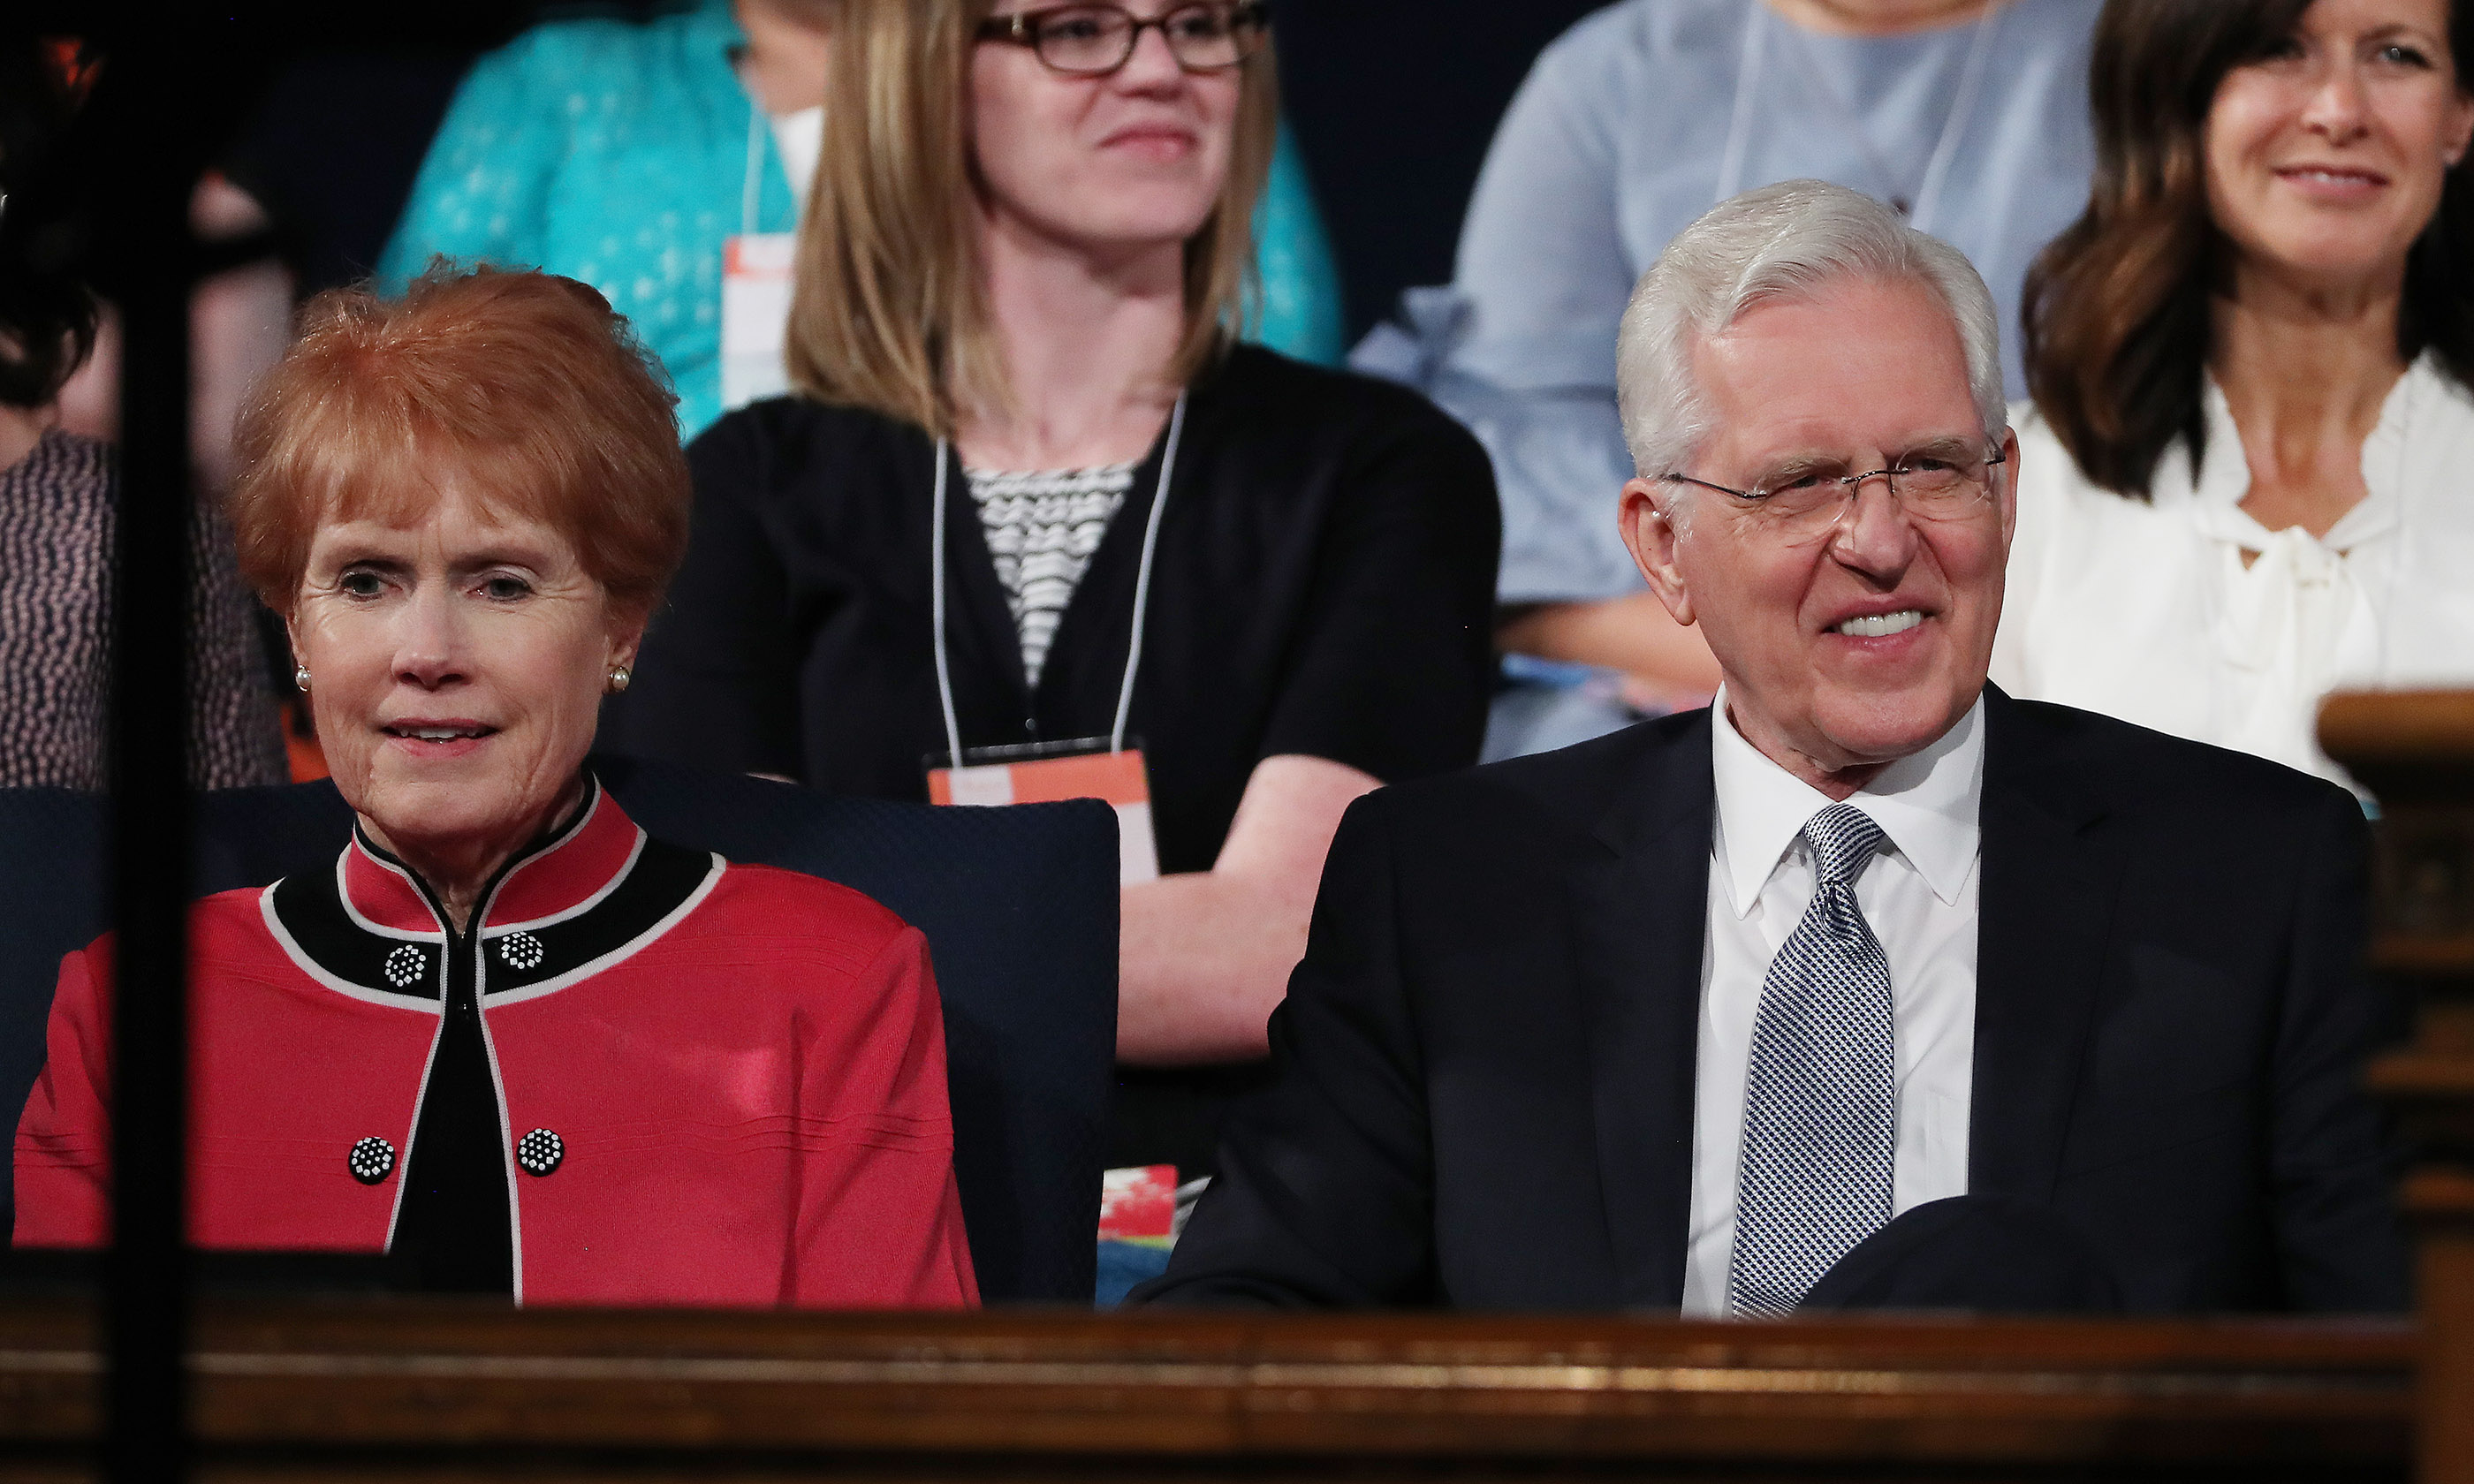 Elder D. Todd Christofferson of the Quorum of the Twelve Apostles for The Church of Jesus Christ of Latter-day Saints sits with his wife, Kathy, prior to speaking during BYU Women's Conference in Provo on Friday, May 3, 2019.